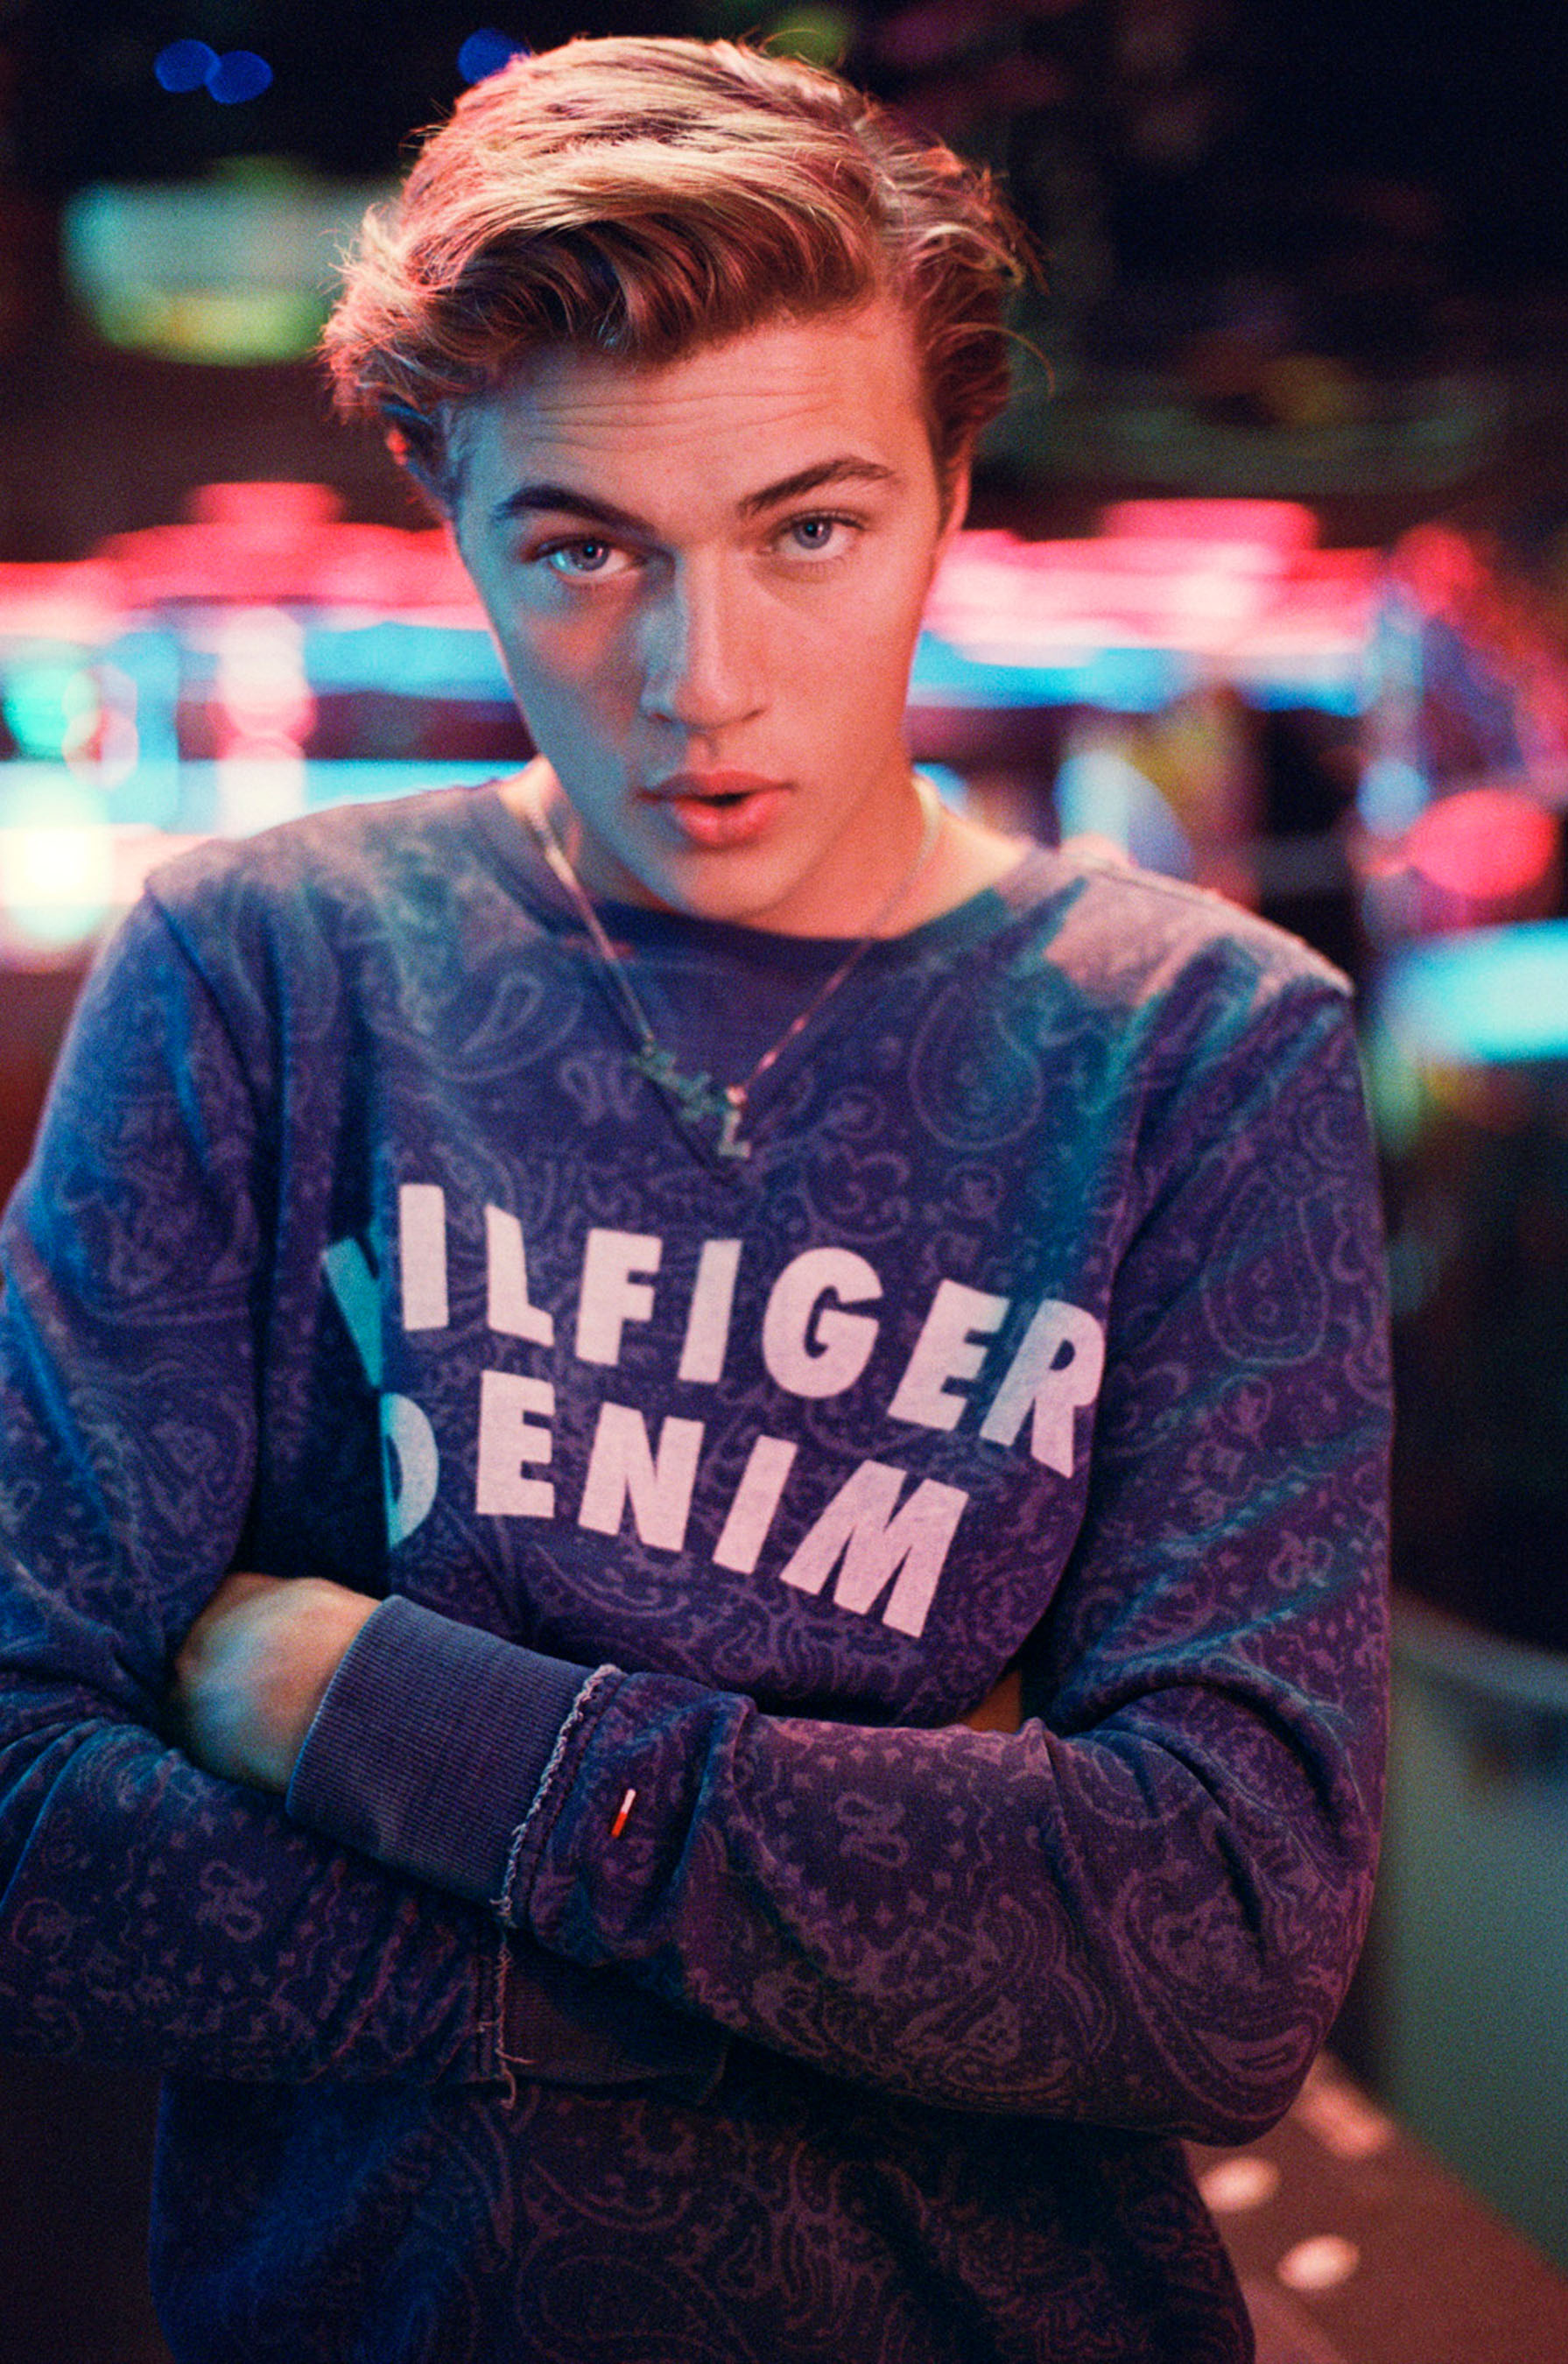 Tommy Hilfiger Jeans' Spring 2017 Ad Campaign